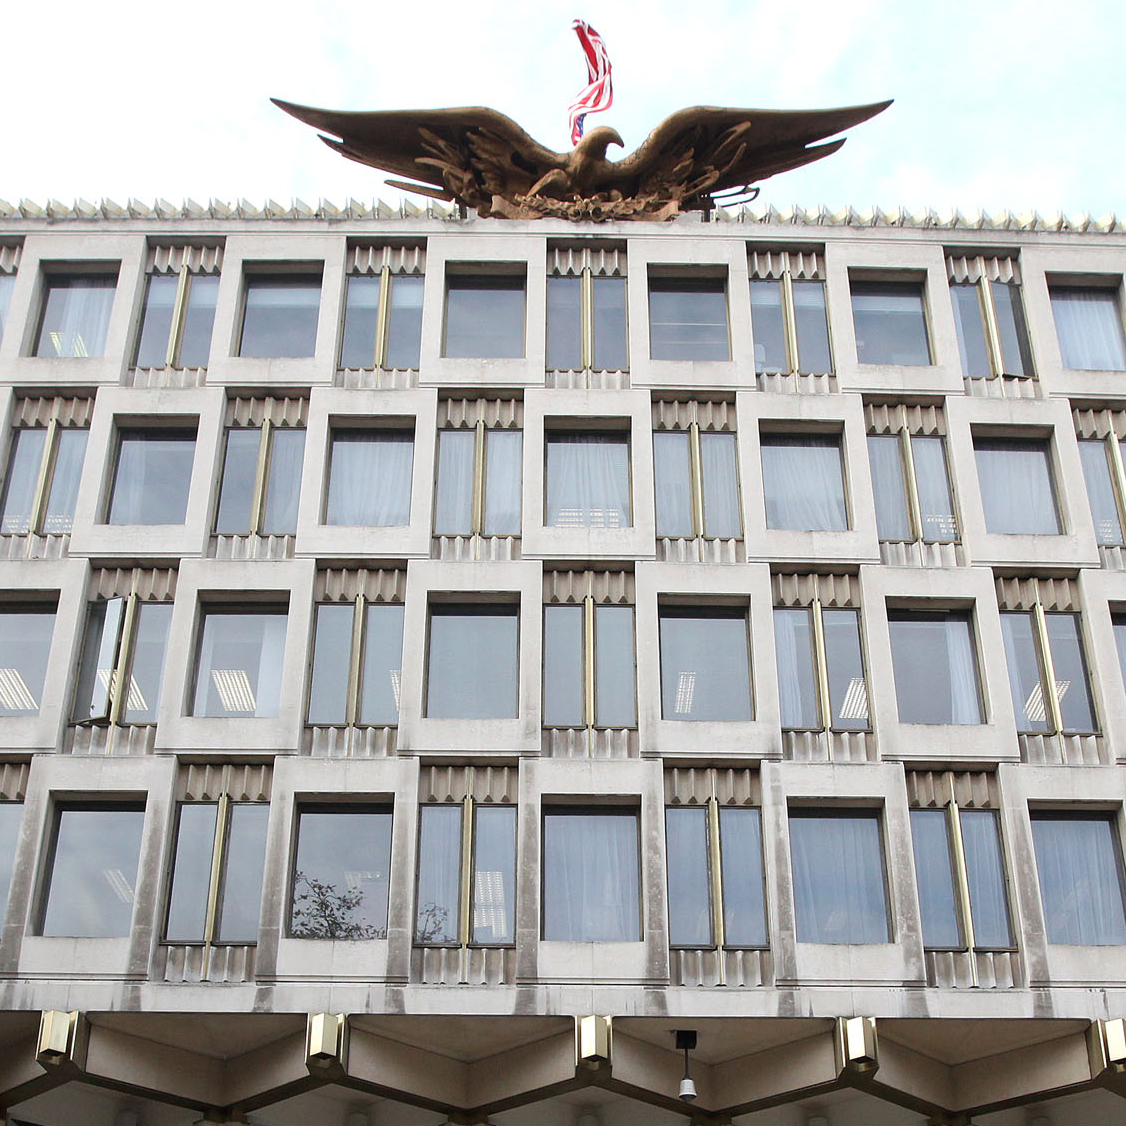 The current U.S. Embassy in central London was designed by Finnish-born American architect Eero Saarinen in 1960. Saarinen also designed the St. Louis Gateway Arch.